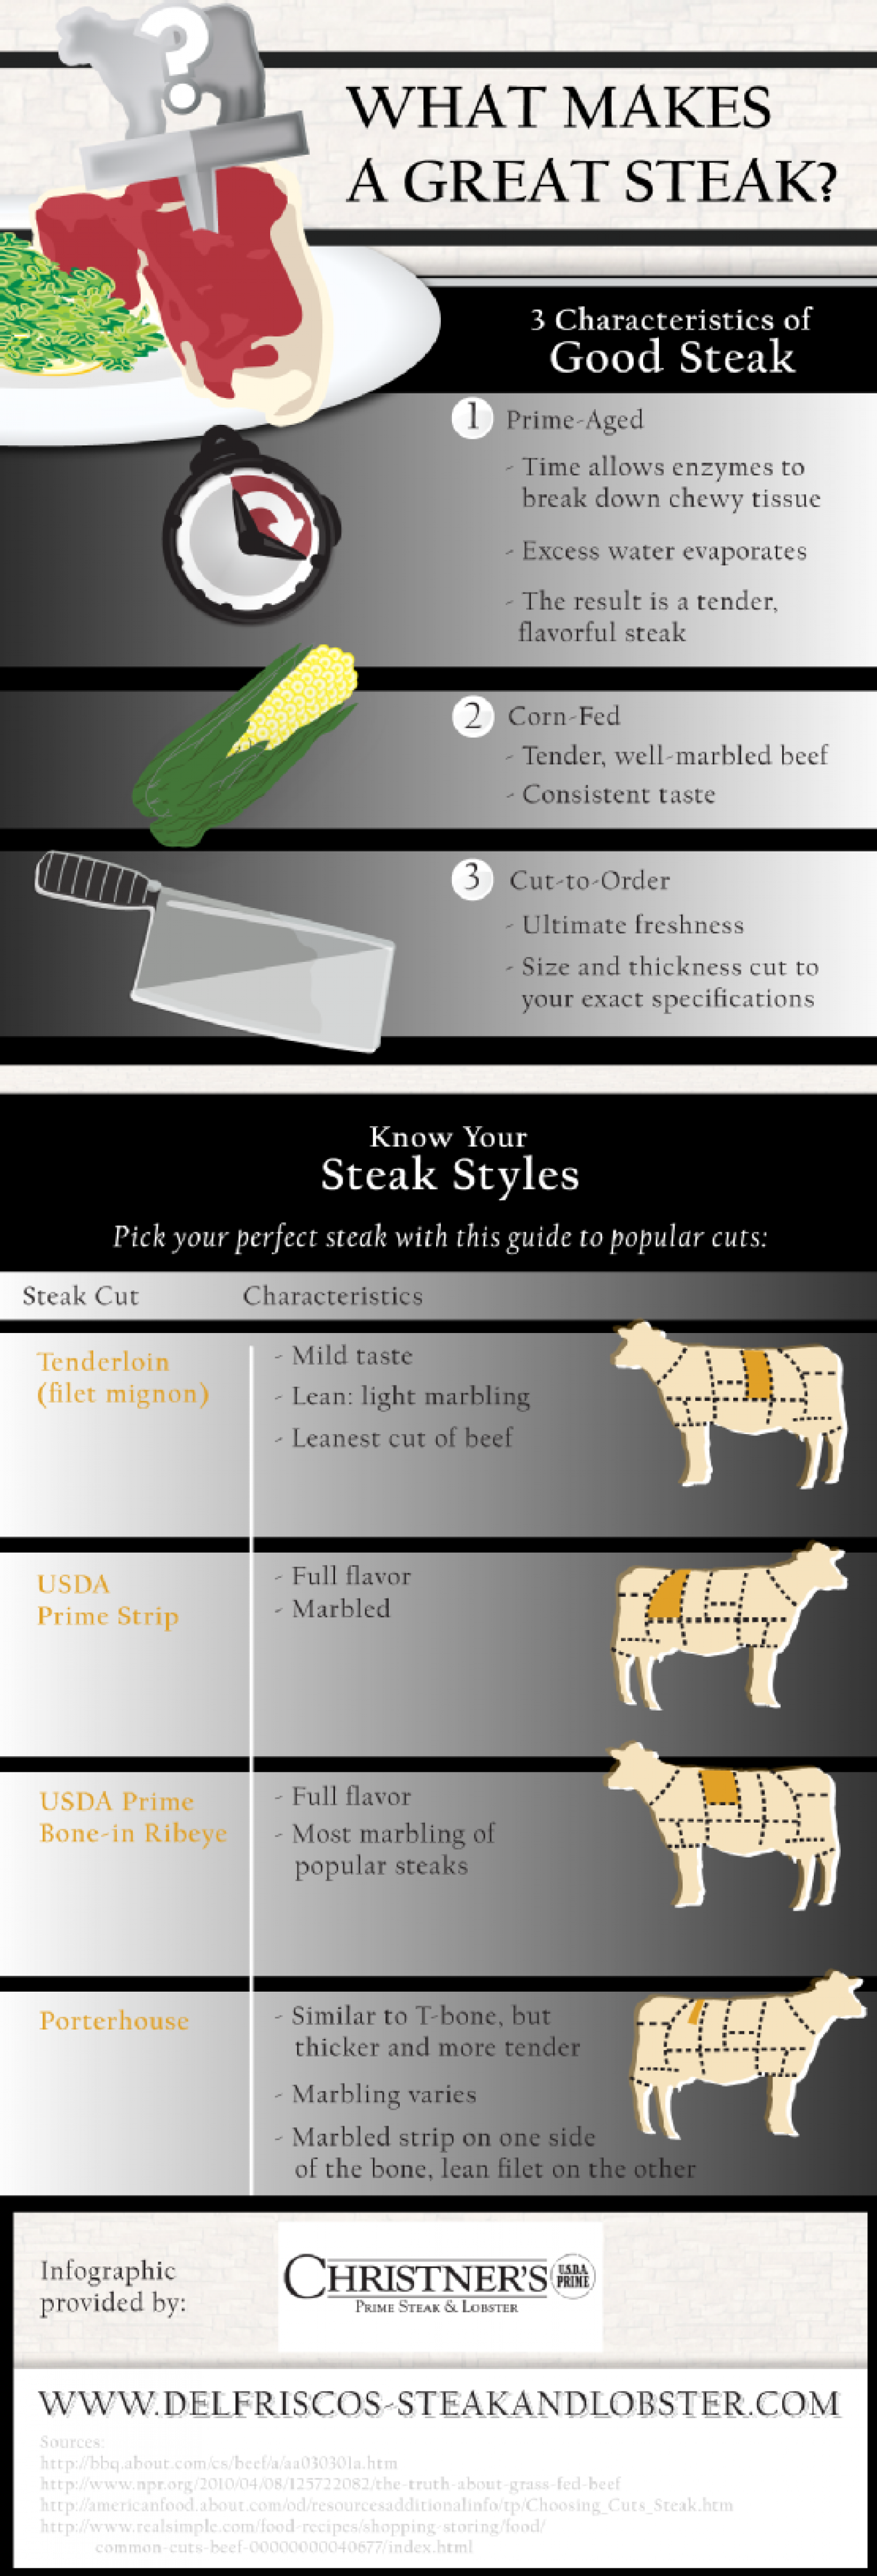 What Makes a Great Steak? Infographic